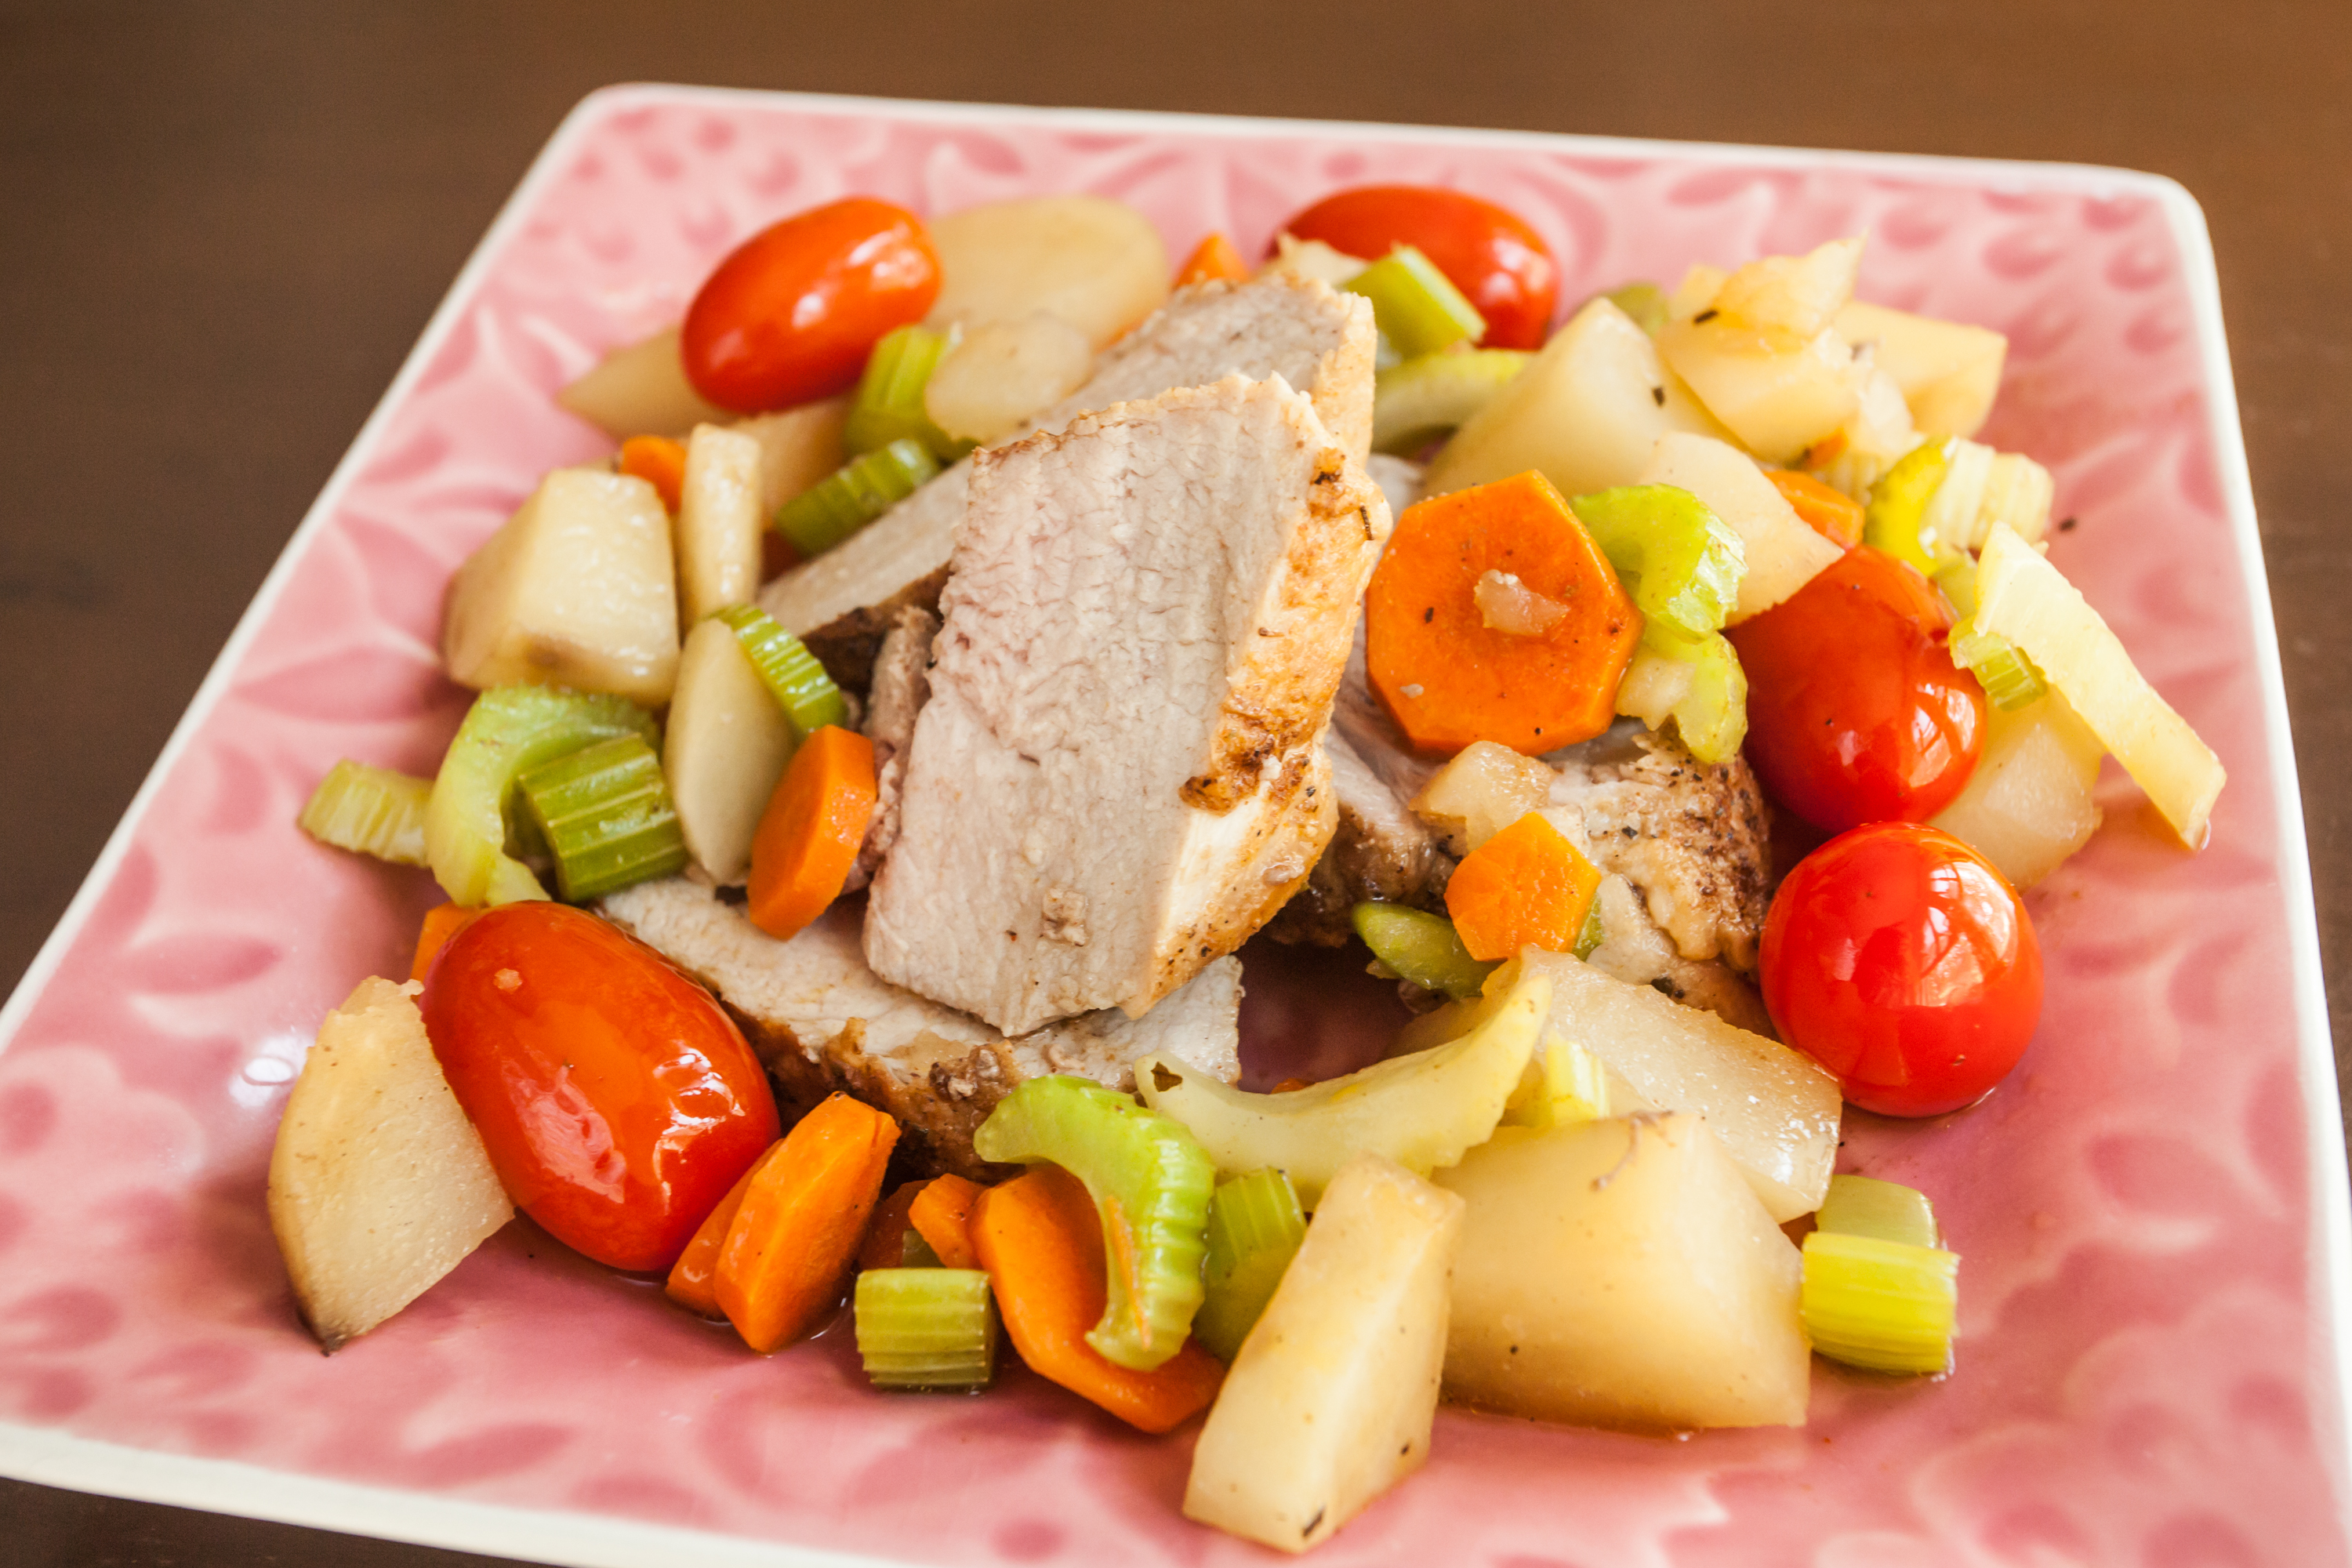 How To Cook A Pork Roast While It Is Still Frozen